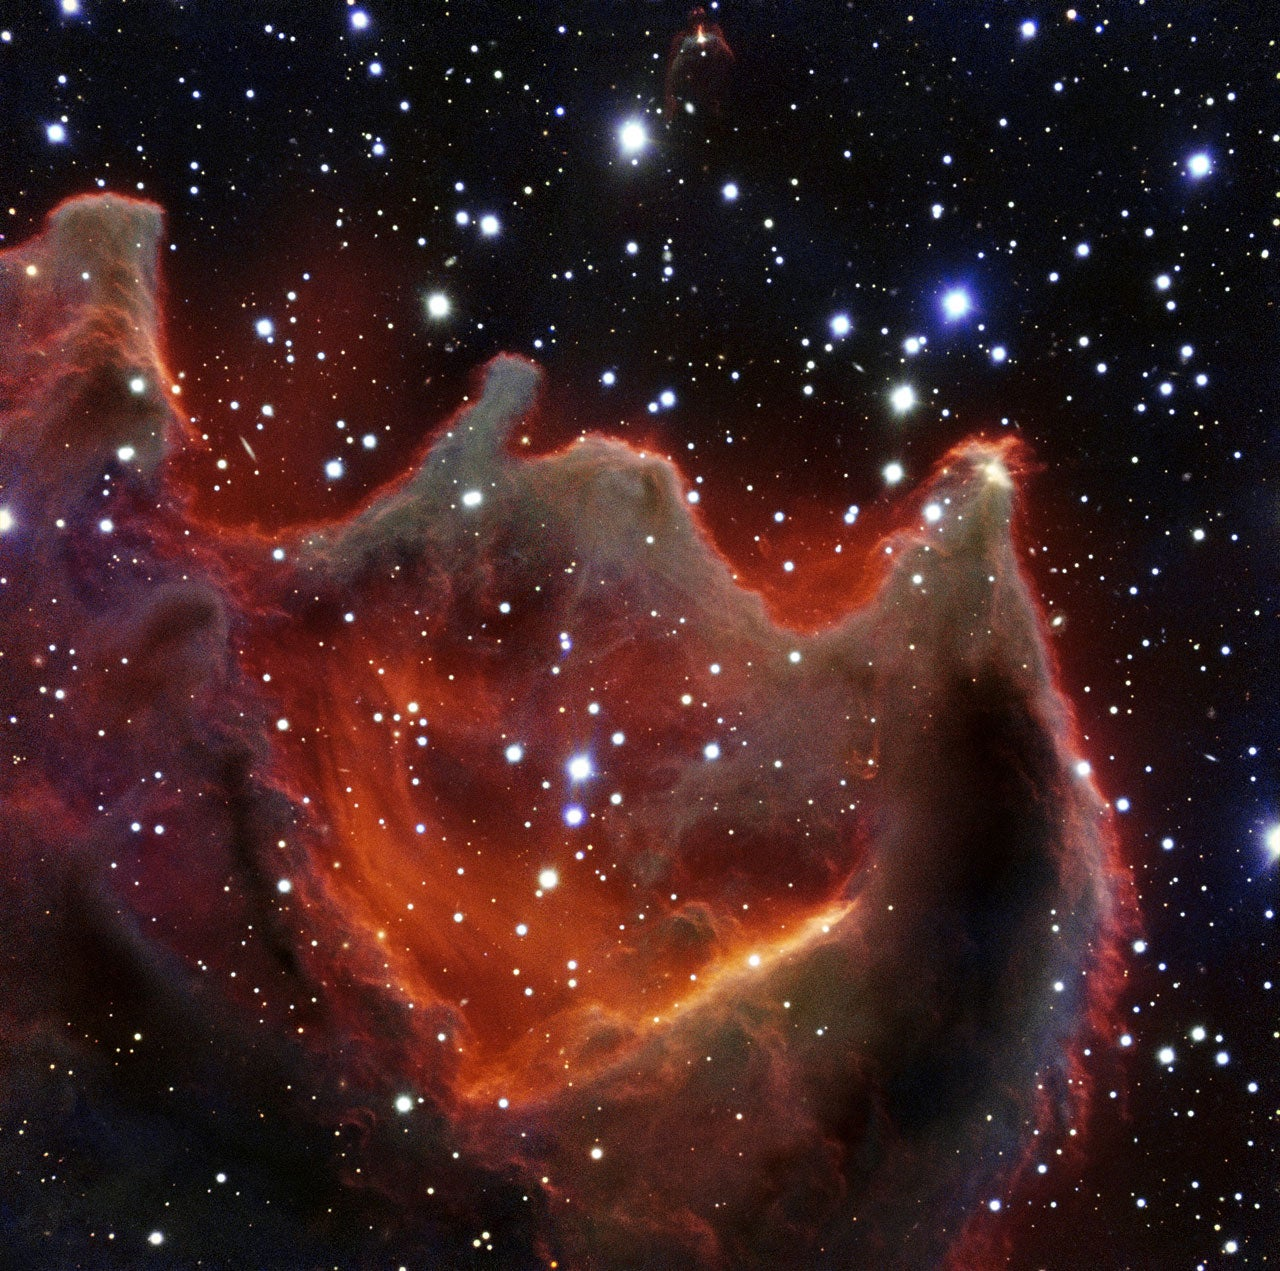 Beautiful new photo of the mysterious Mouth of the Beast nebula